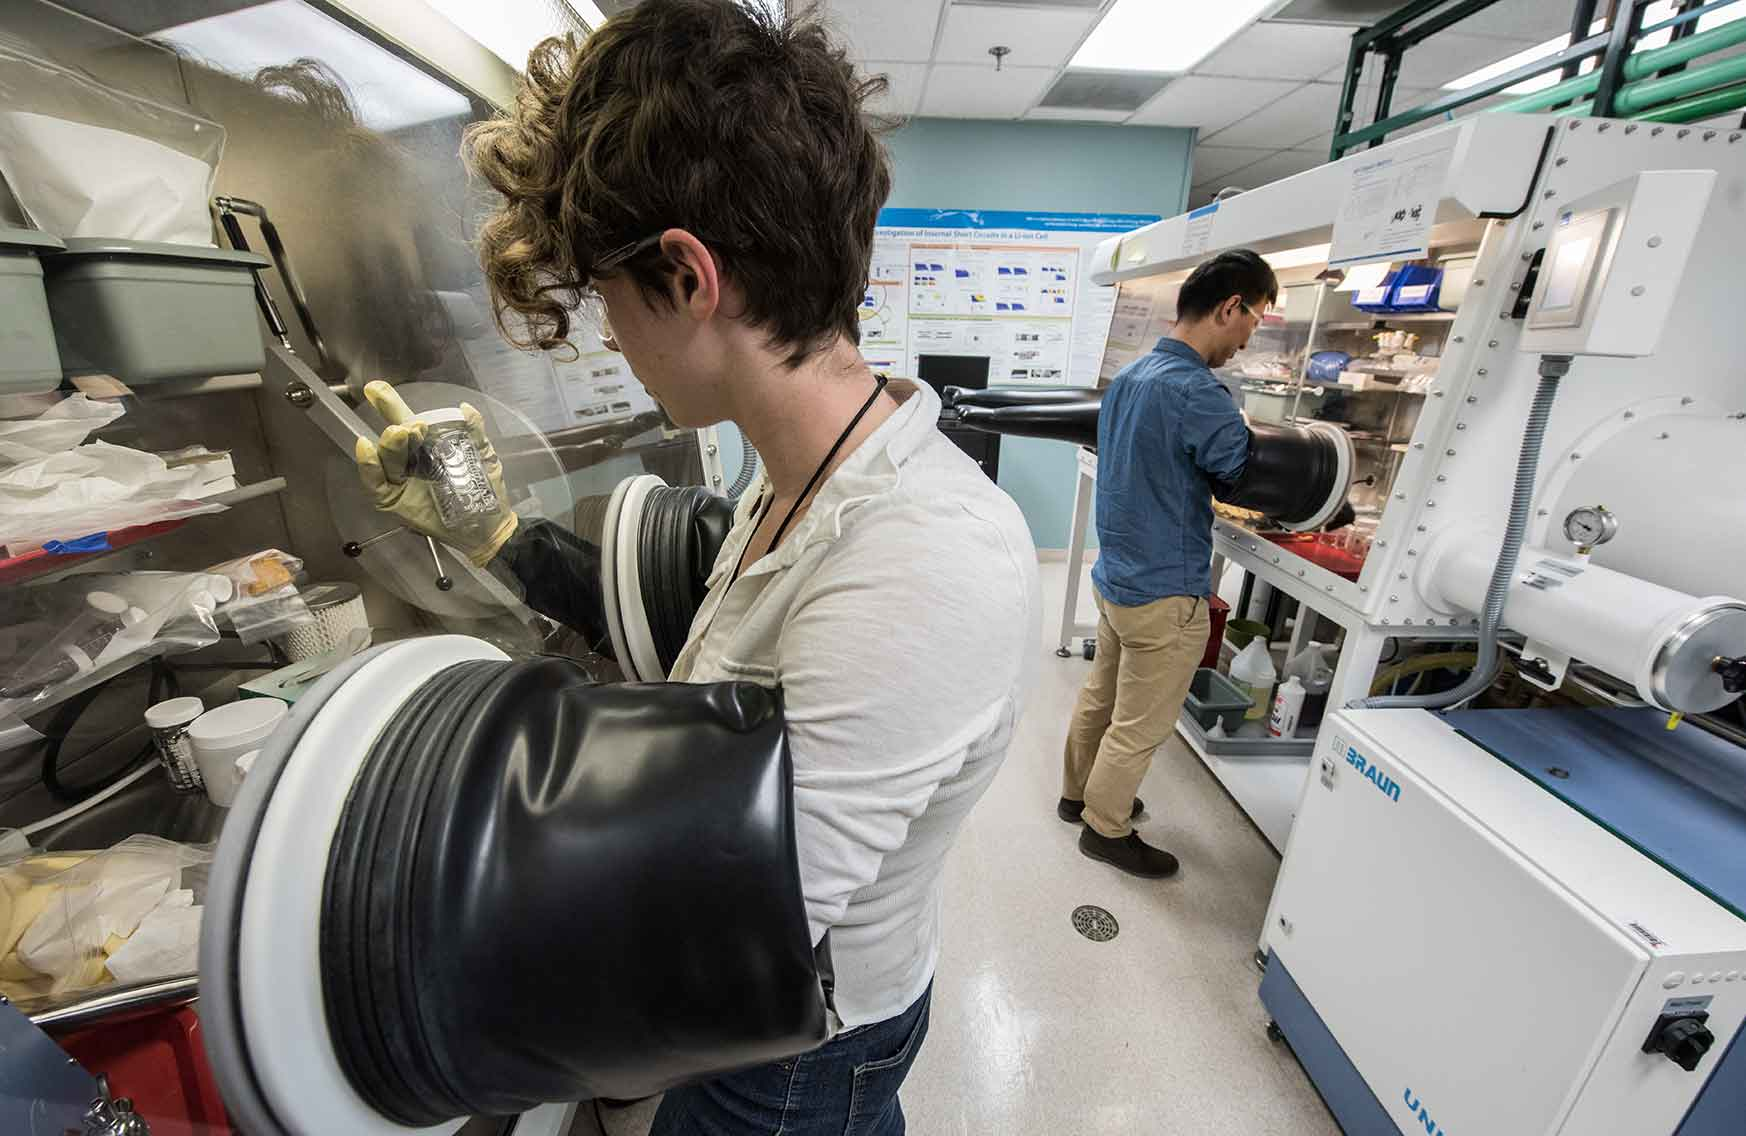 Two researchers using glove boxes in energy storage laboratory.